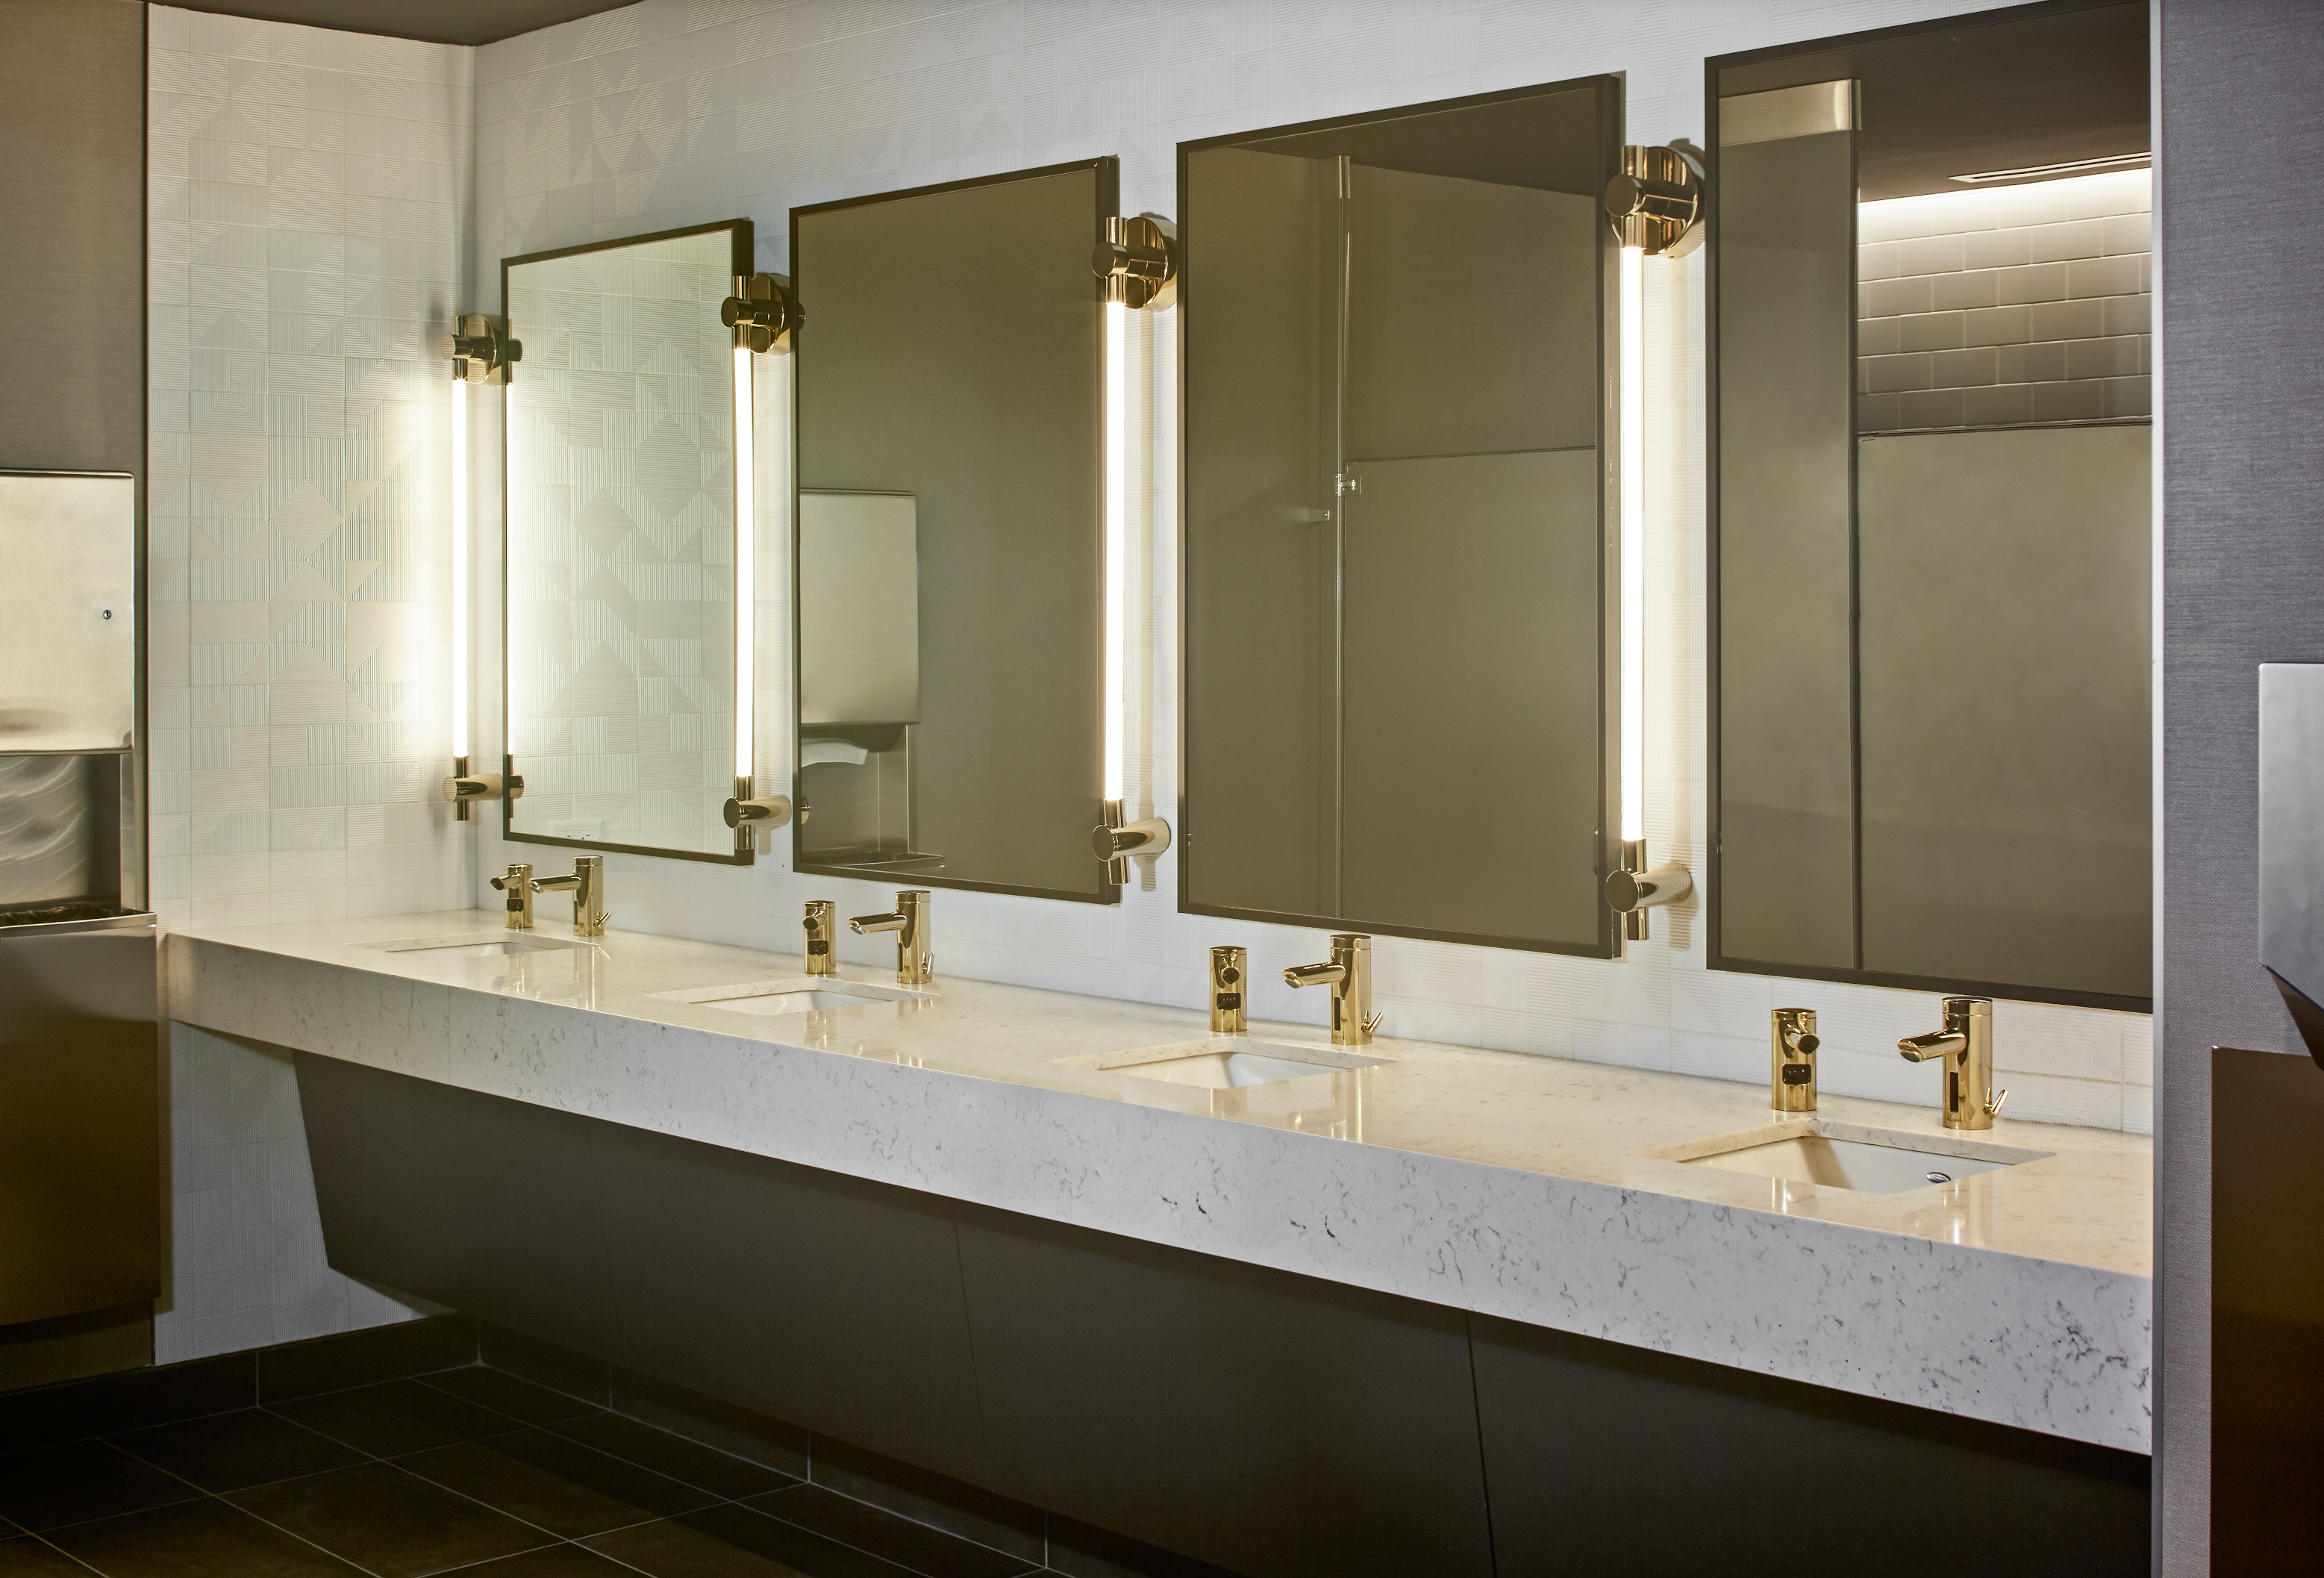 PE0821_Old-Chicago-Post-Office-bathroom-faucets.jpg